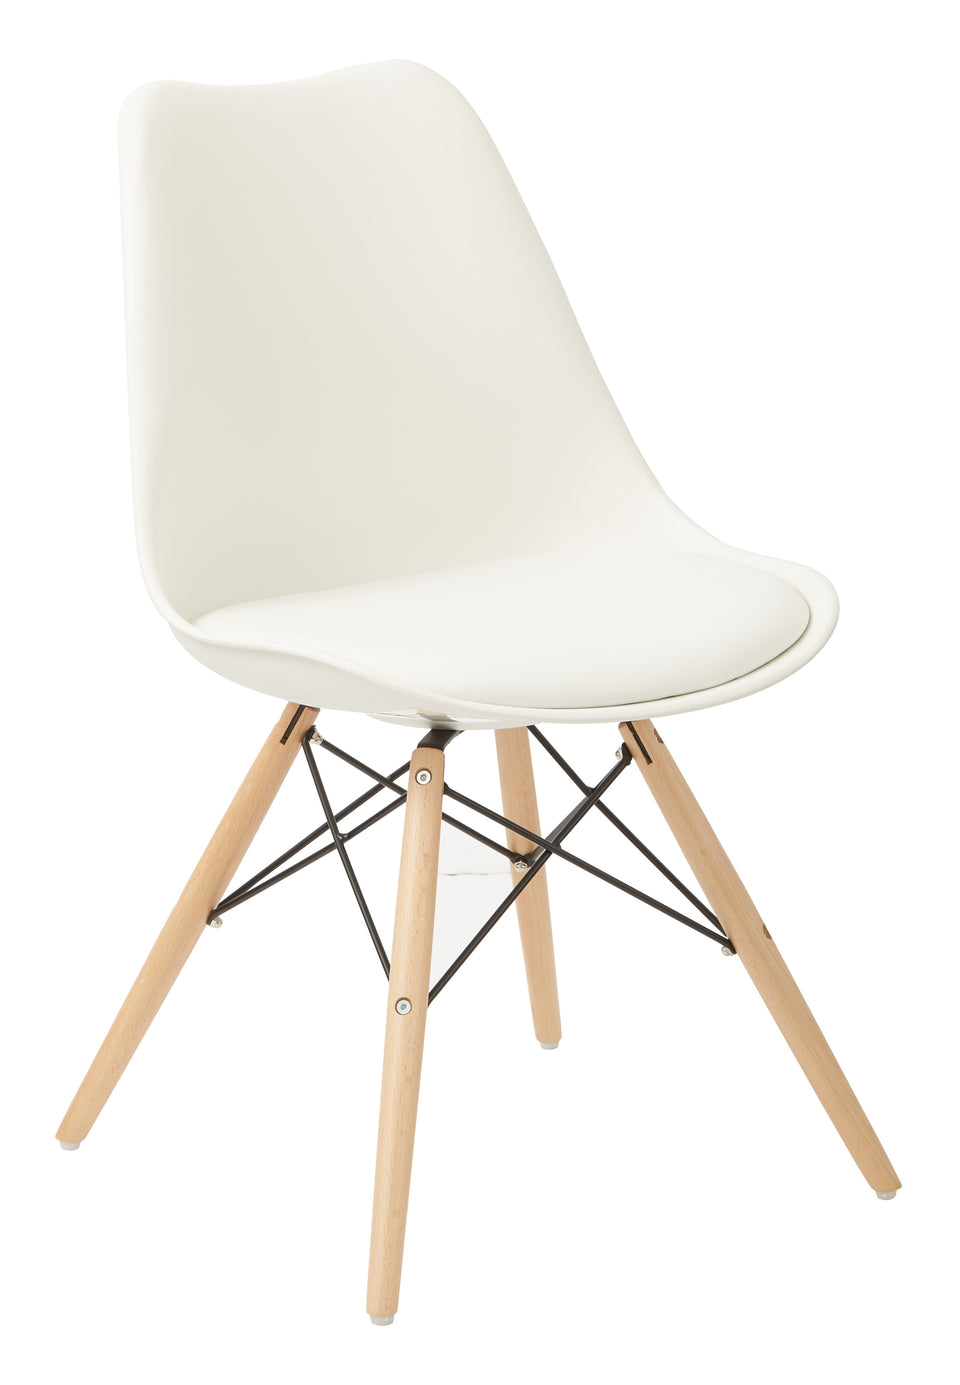 mid century modern aimes white bucket chair with natural post legs scandinavian design inspired from decurban.com